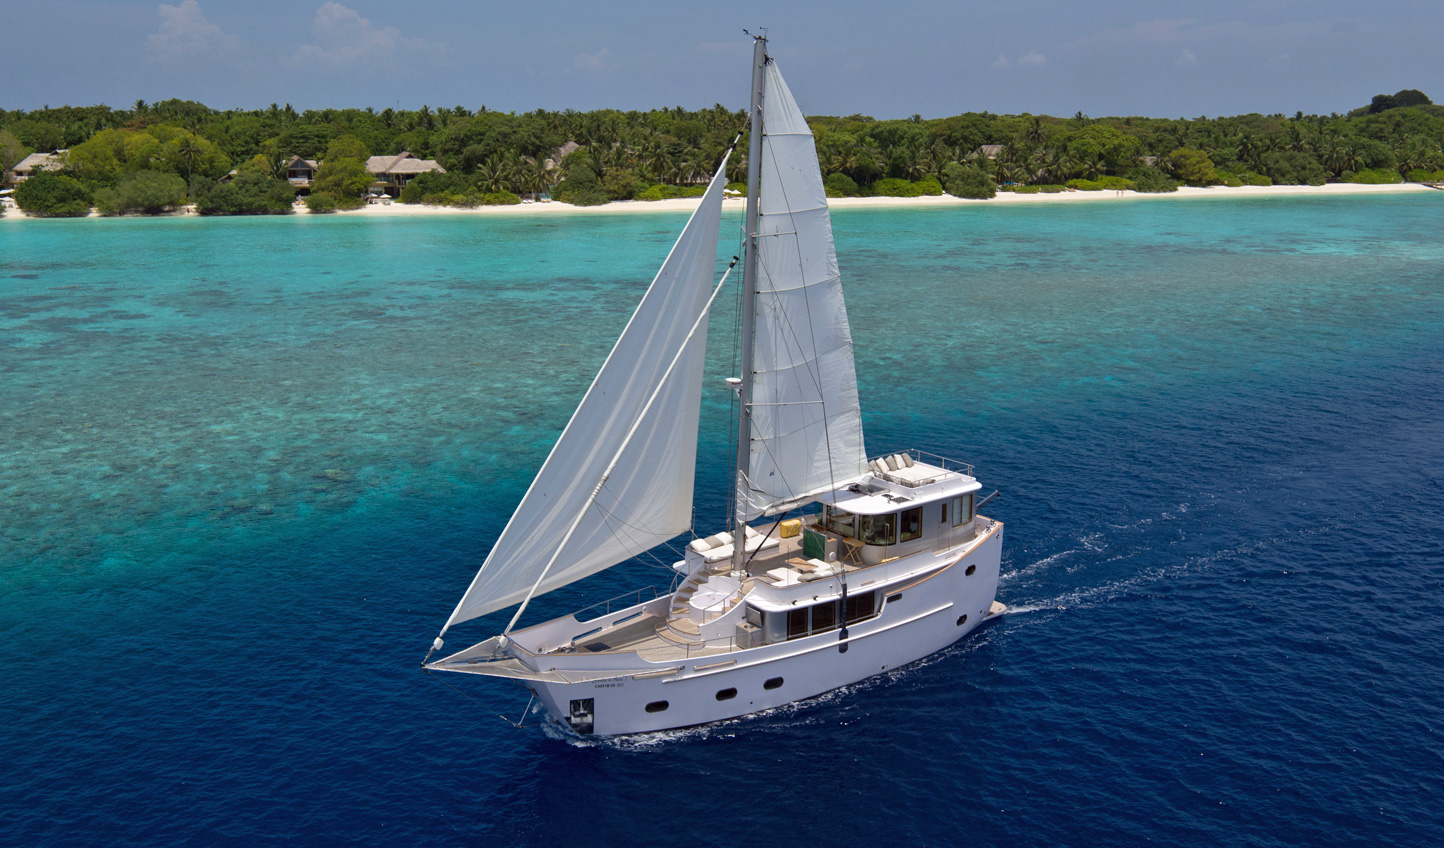 See the Maldives from a whole new angle onboard Soneva in Aqua